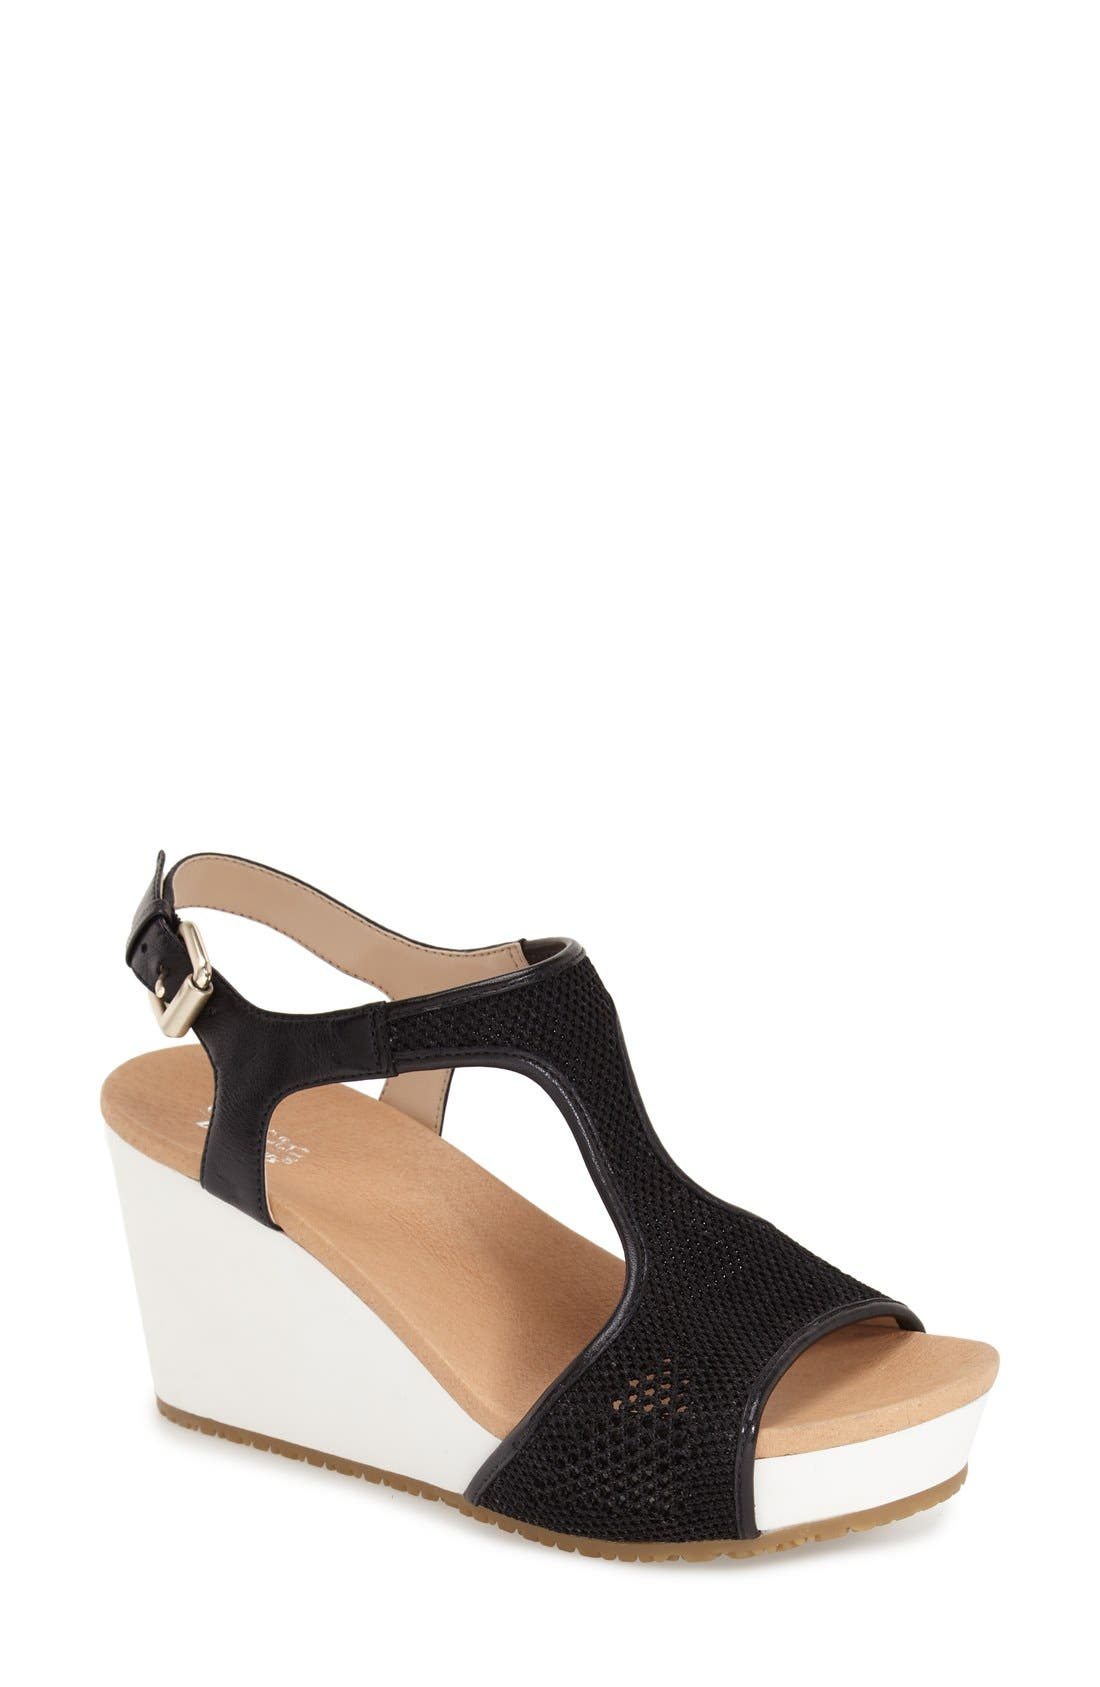 'Original Collection Wiley' Wedge Sandal,                         Main,                         color, 001